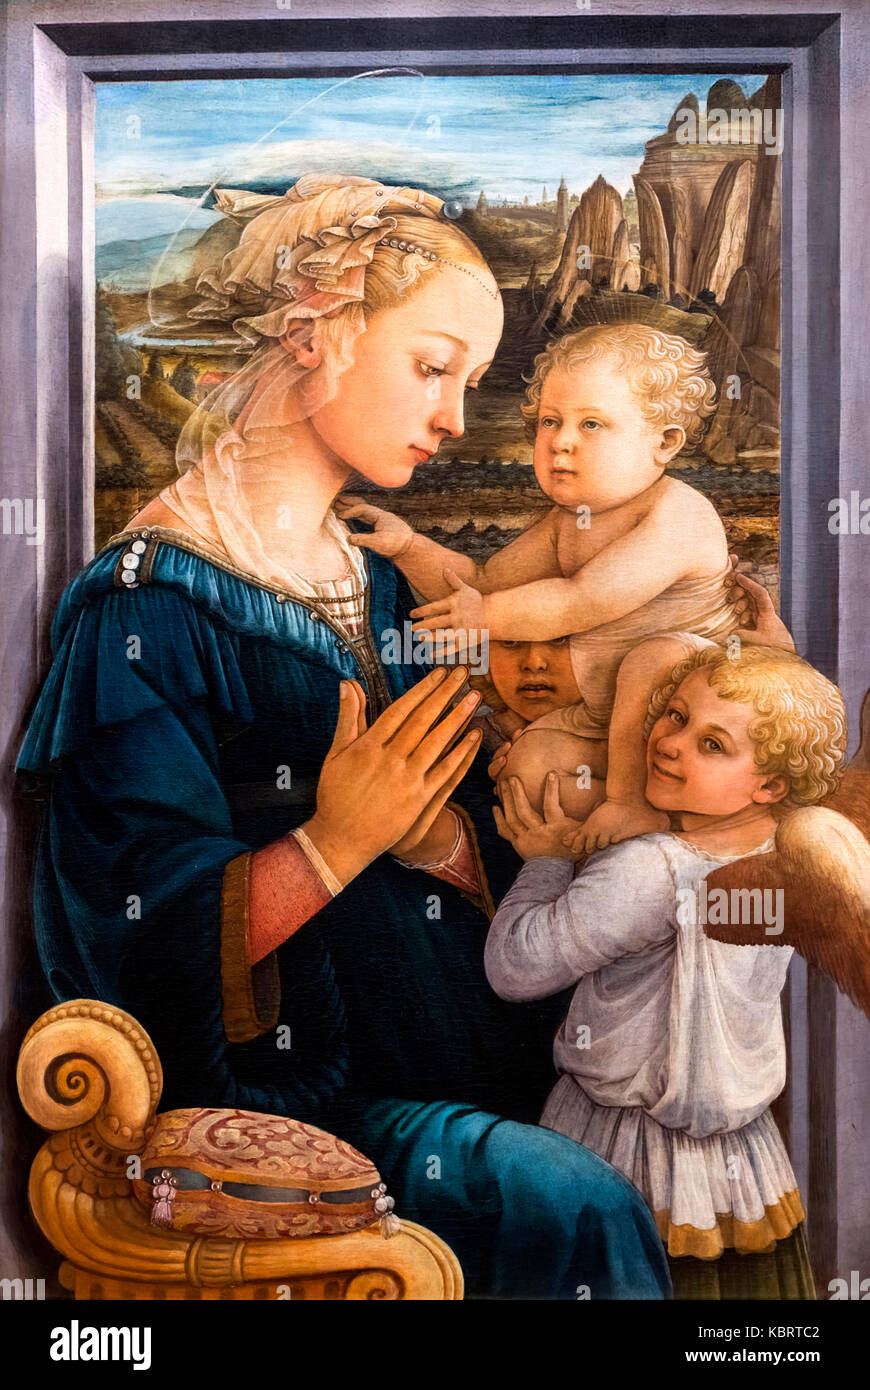 Madonna and Child with Two Angels by Filippo Lippi  (c.1406-1469), tempera on wood, c.1460-65 - Stock Image